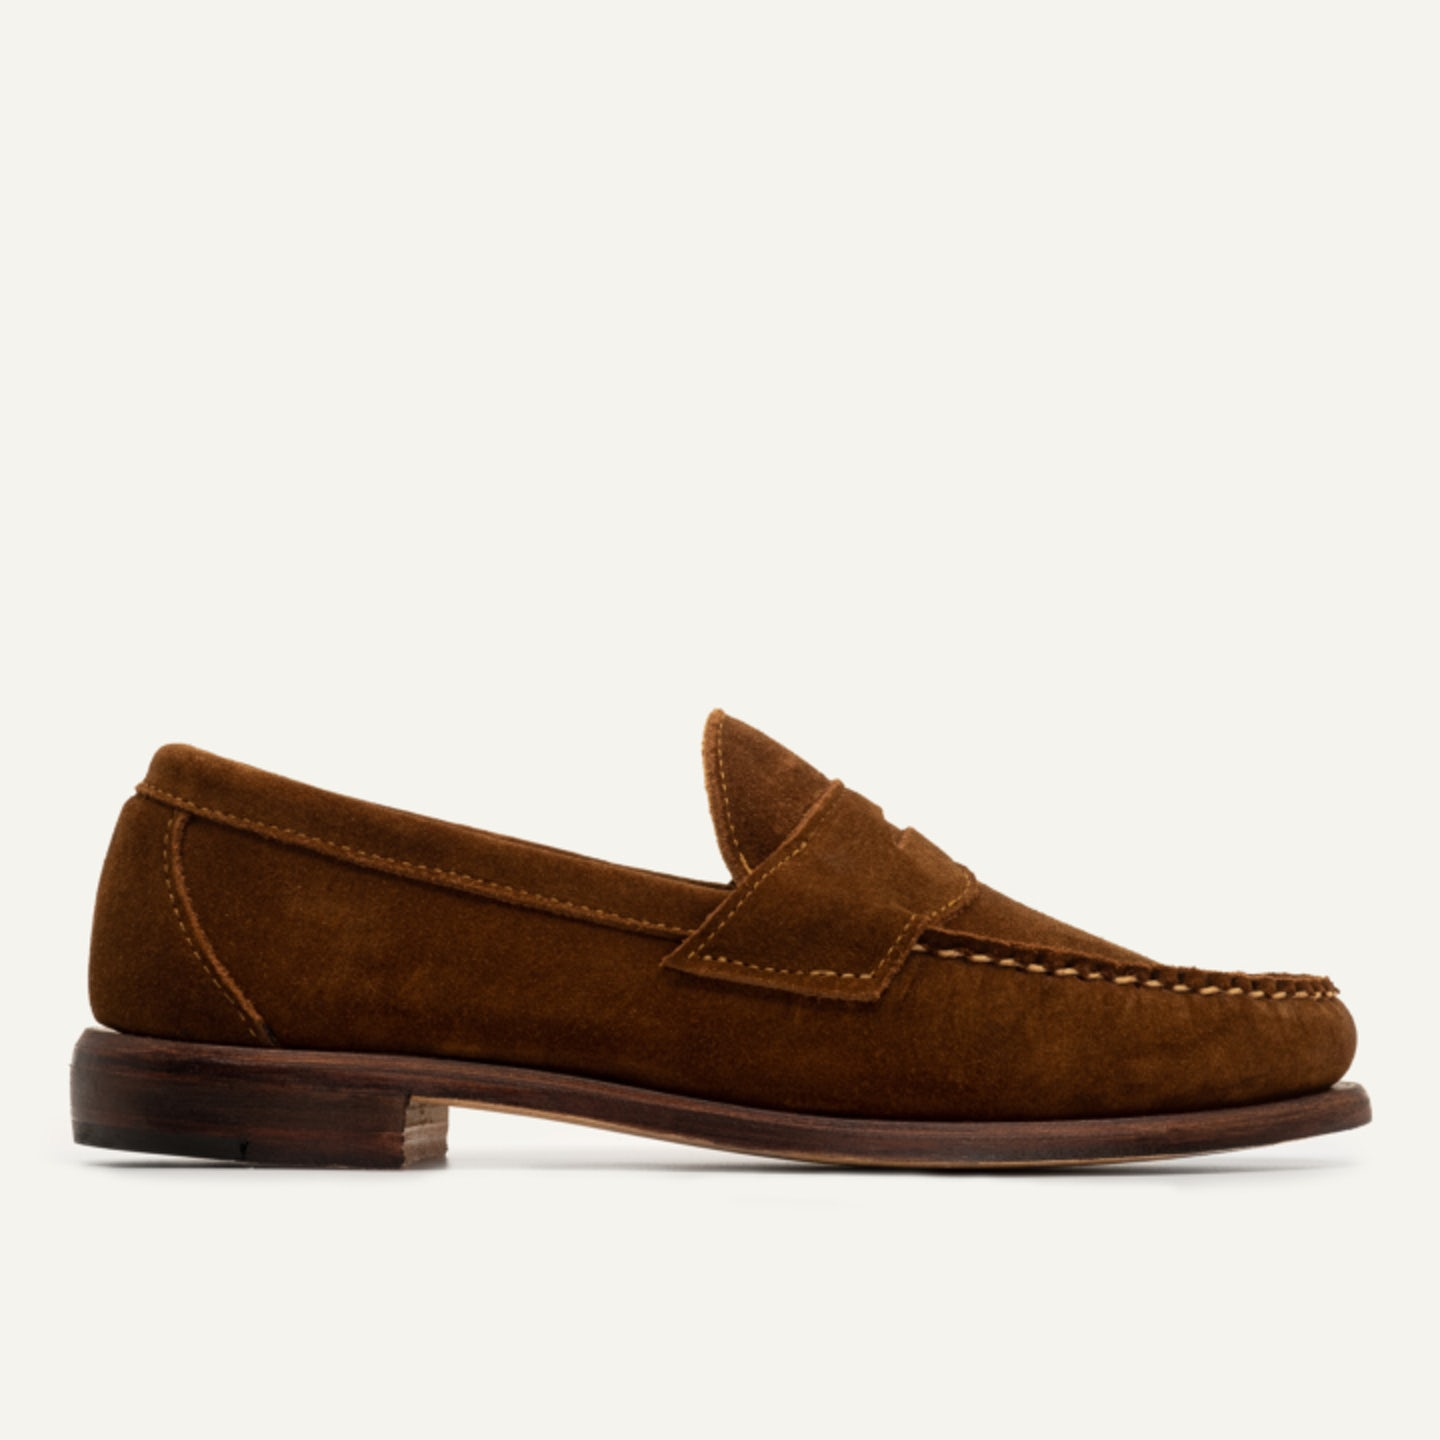 Penny Loafer in Snuff Repello Suede, Leather Sole with Dovetail Toplift